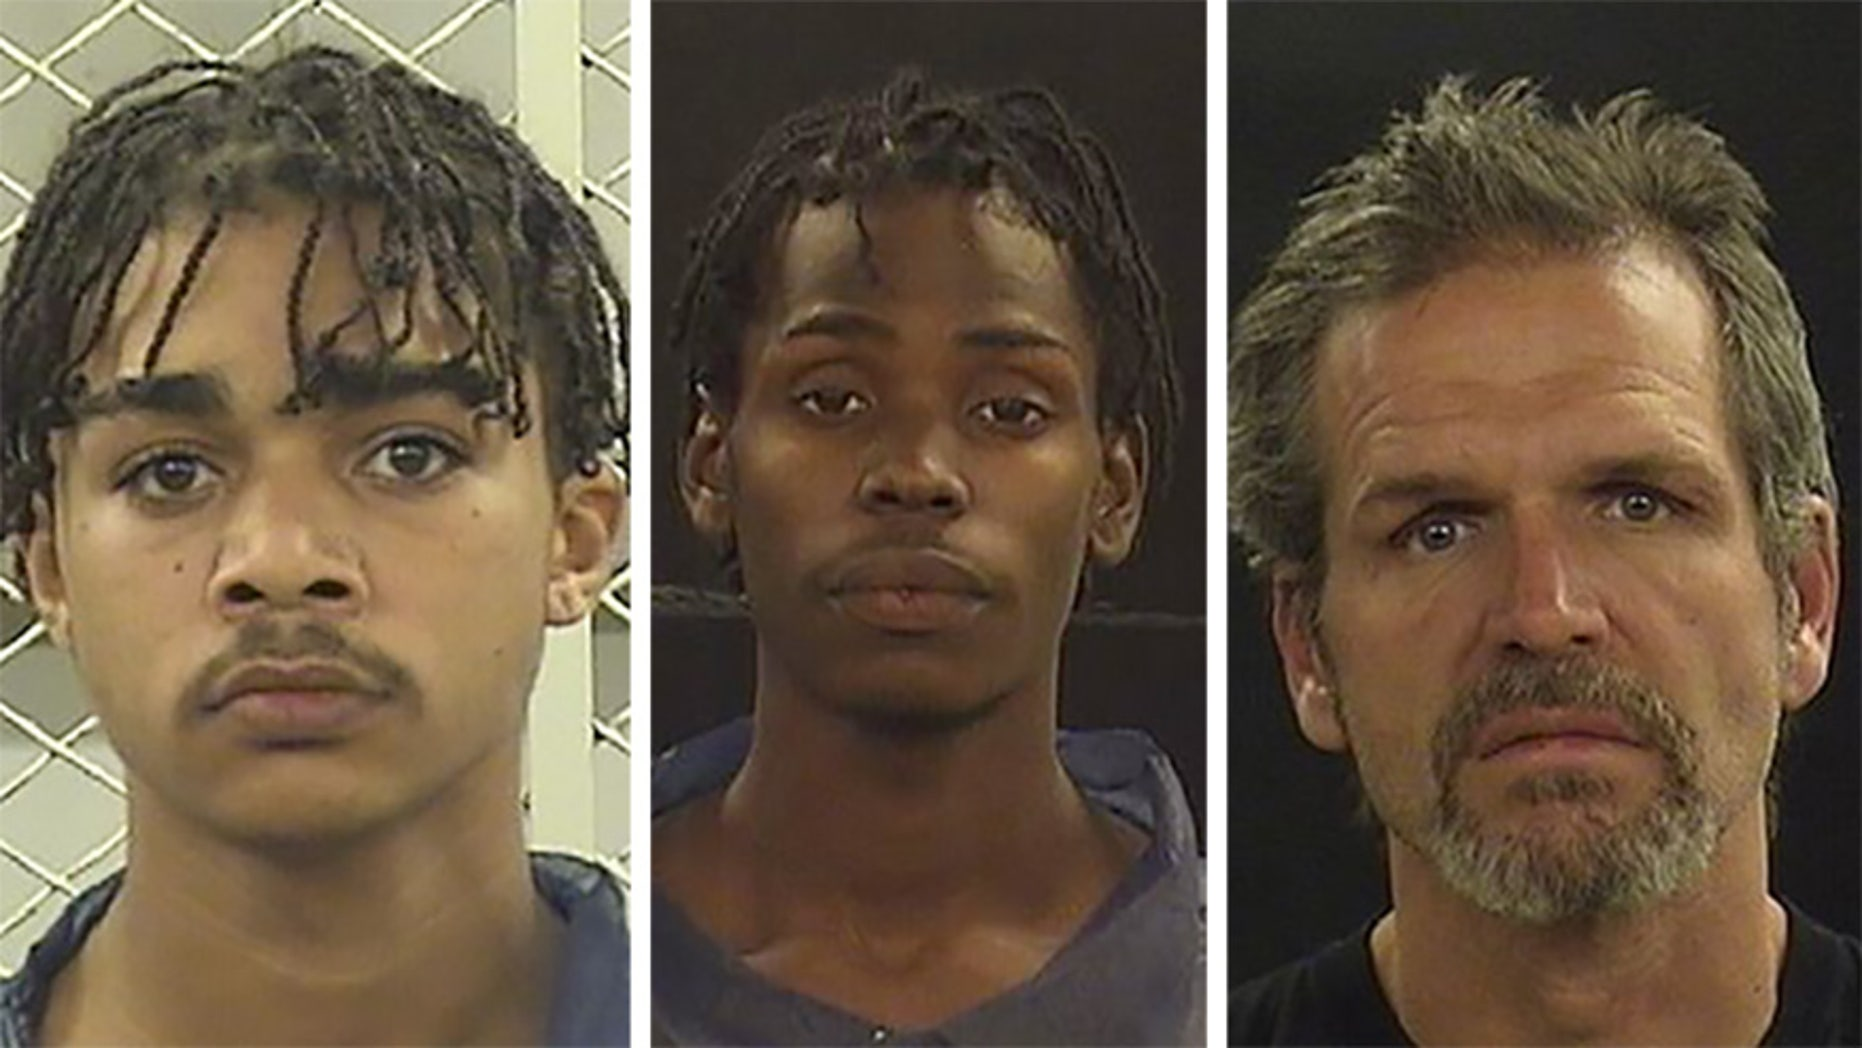 Nathaniel Ramos Jr., 18, left, Keli Dunnican, 22, and Troy White, 47, are accused of assaulting, raping, and dousing two men with gasoline.